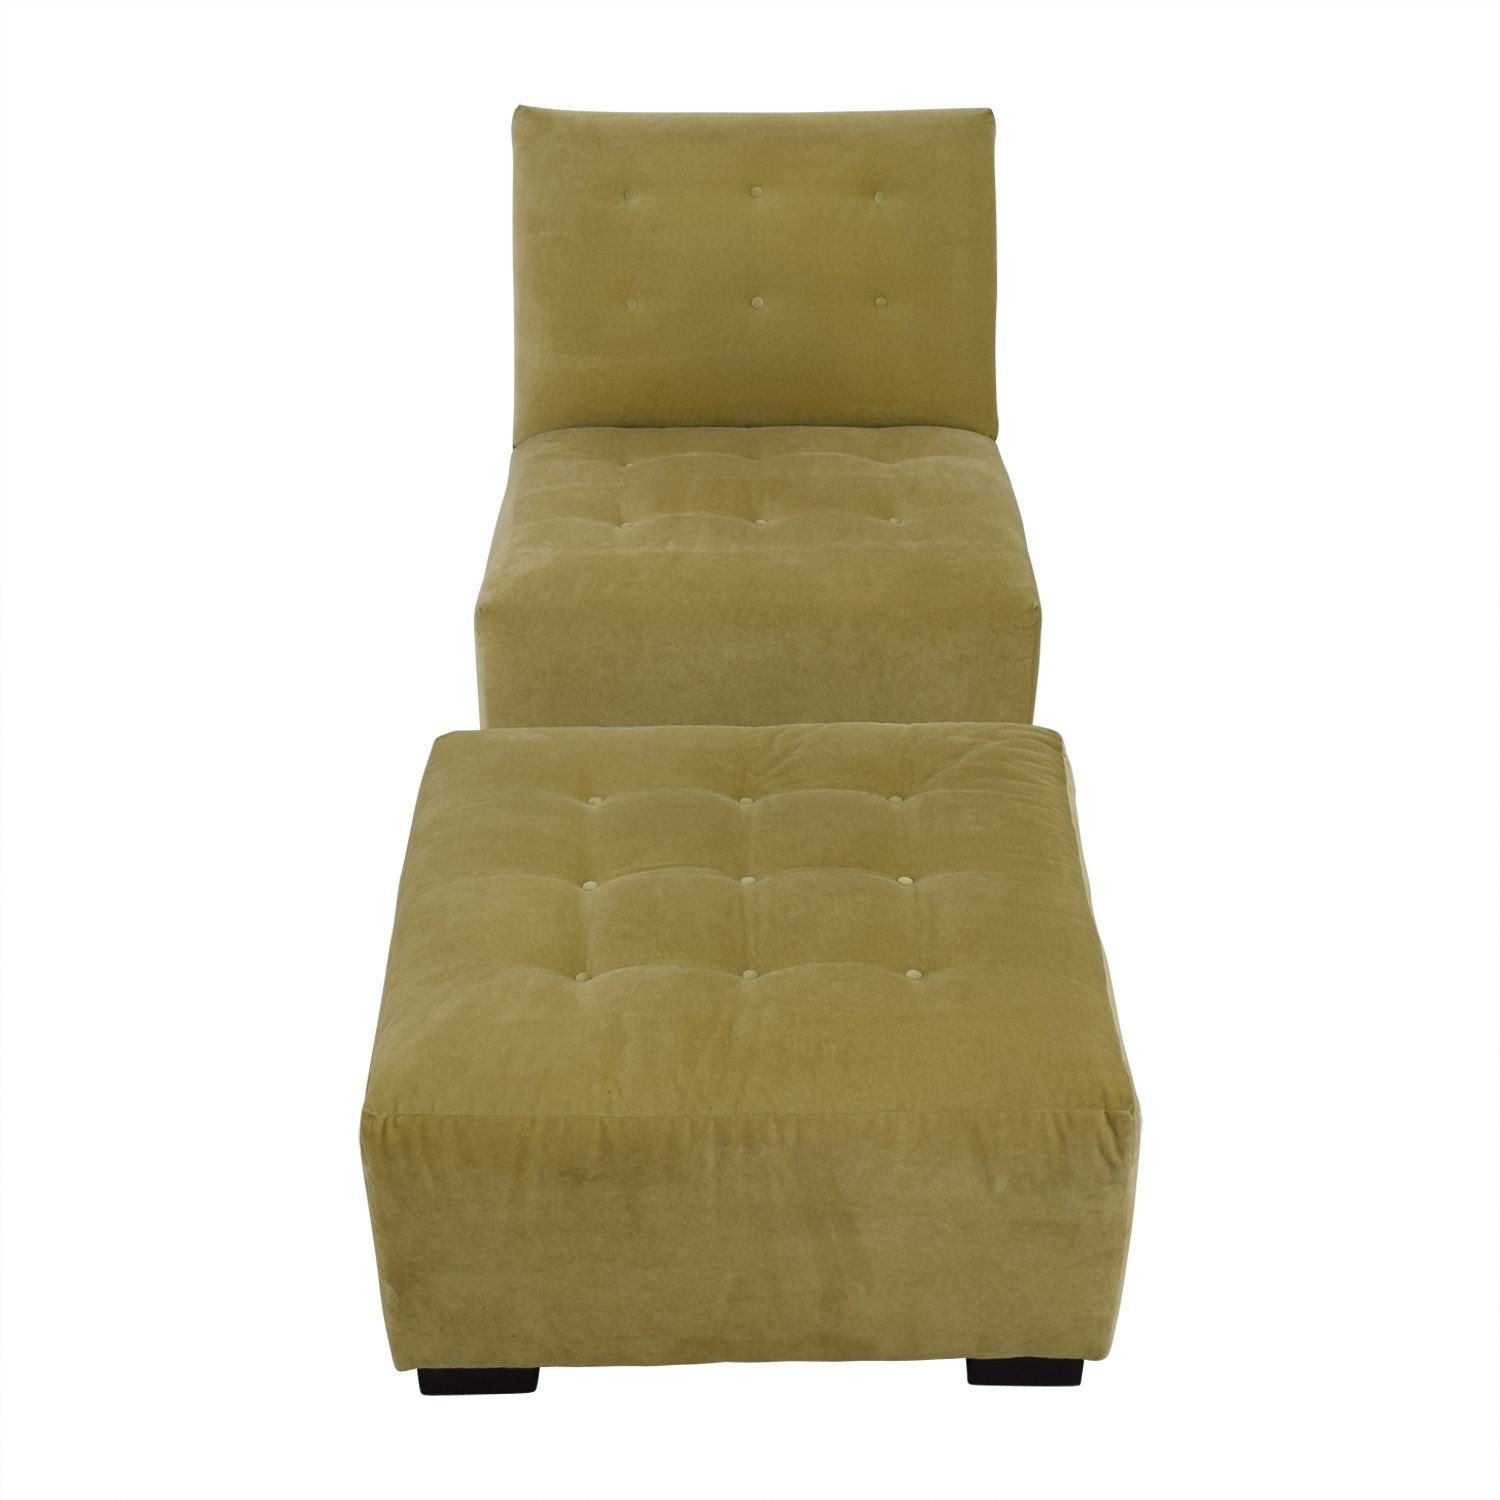 Mitchell Gold + Bob Williams Mitchell Gold + Bob Williams Sage Green Tufted Velvet Lounge Chair  sc 1 st  Furnishare : used chaise lounge chairs - Sectionals, Sofas & Couches